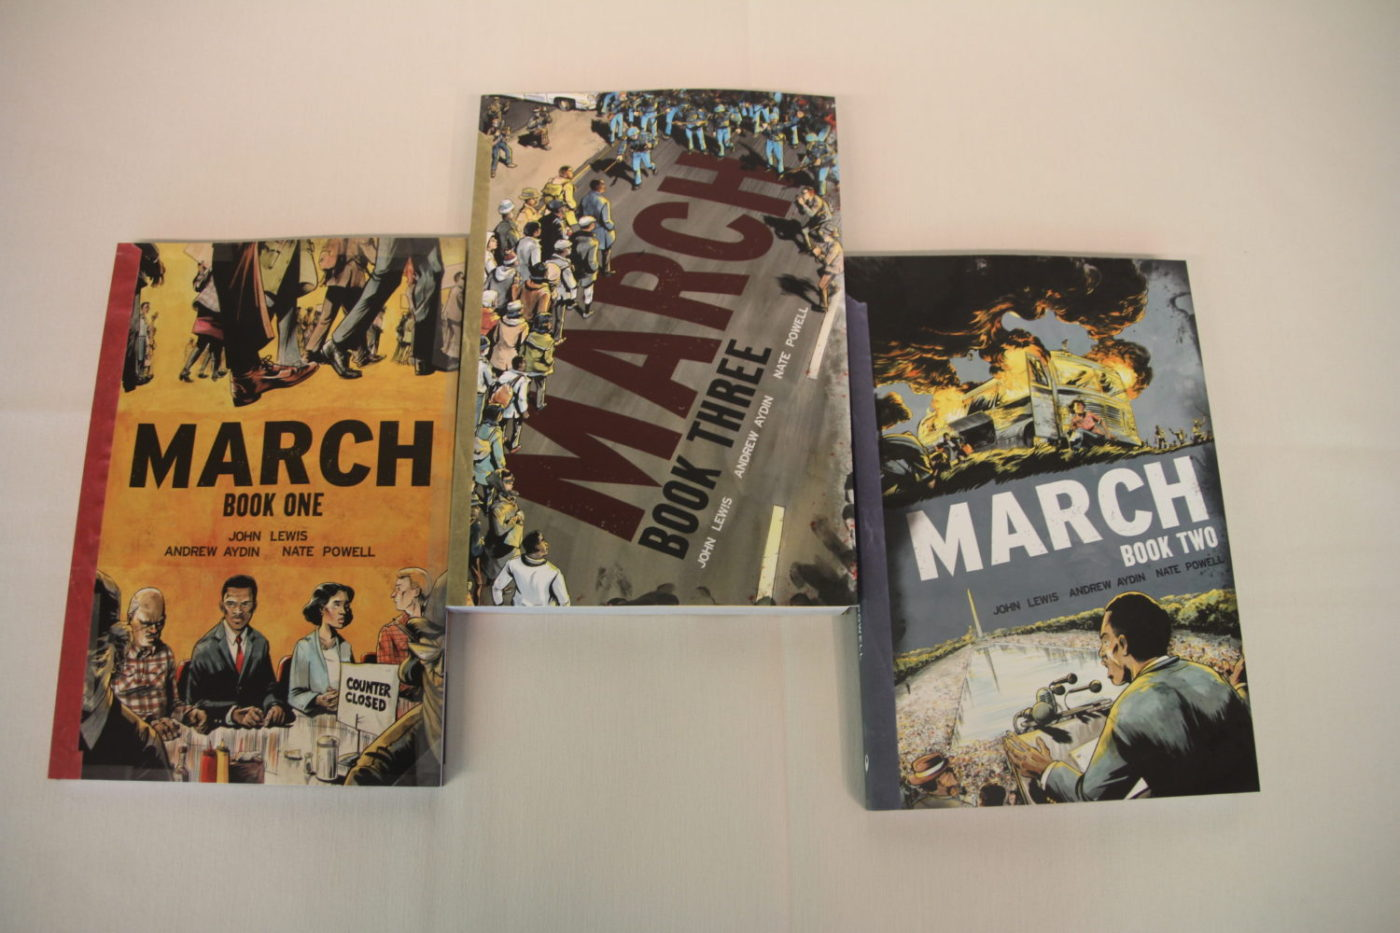 John-Lewis-speaks-at-USF-on-a-book-tour-for-'March'-3-volume-graphic-novel-on-Civil-Rights-Movement-2016-by-Johnnie-Burrell-1-1400x933, Am I my brother's keeper?, Culture Currents